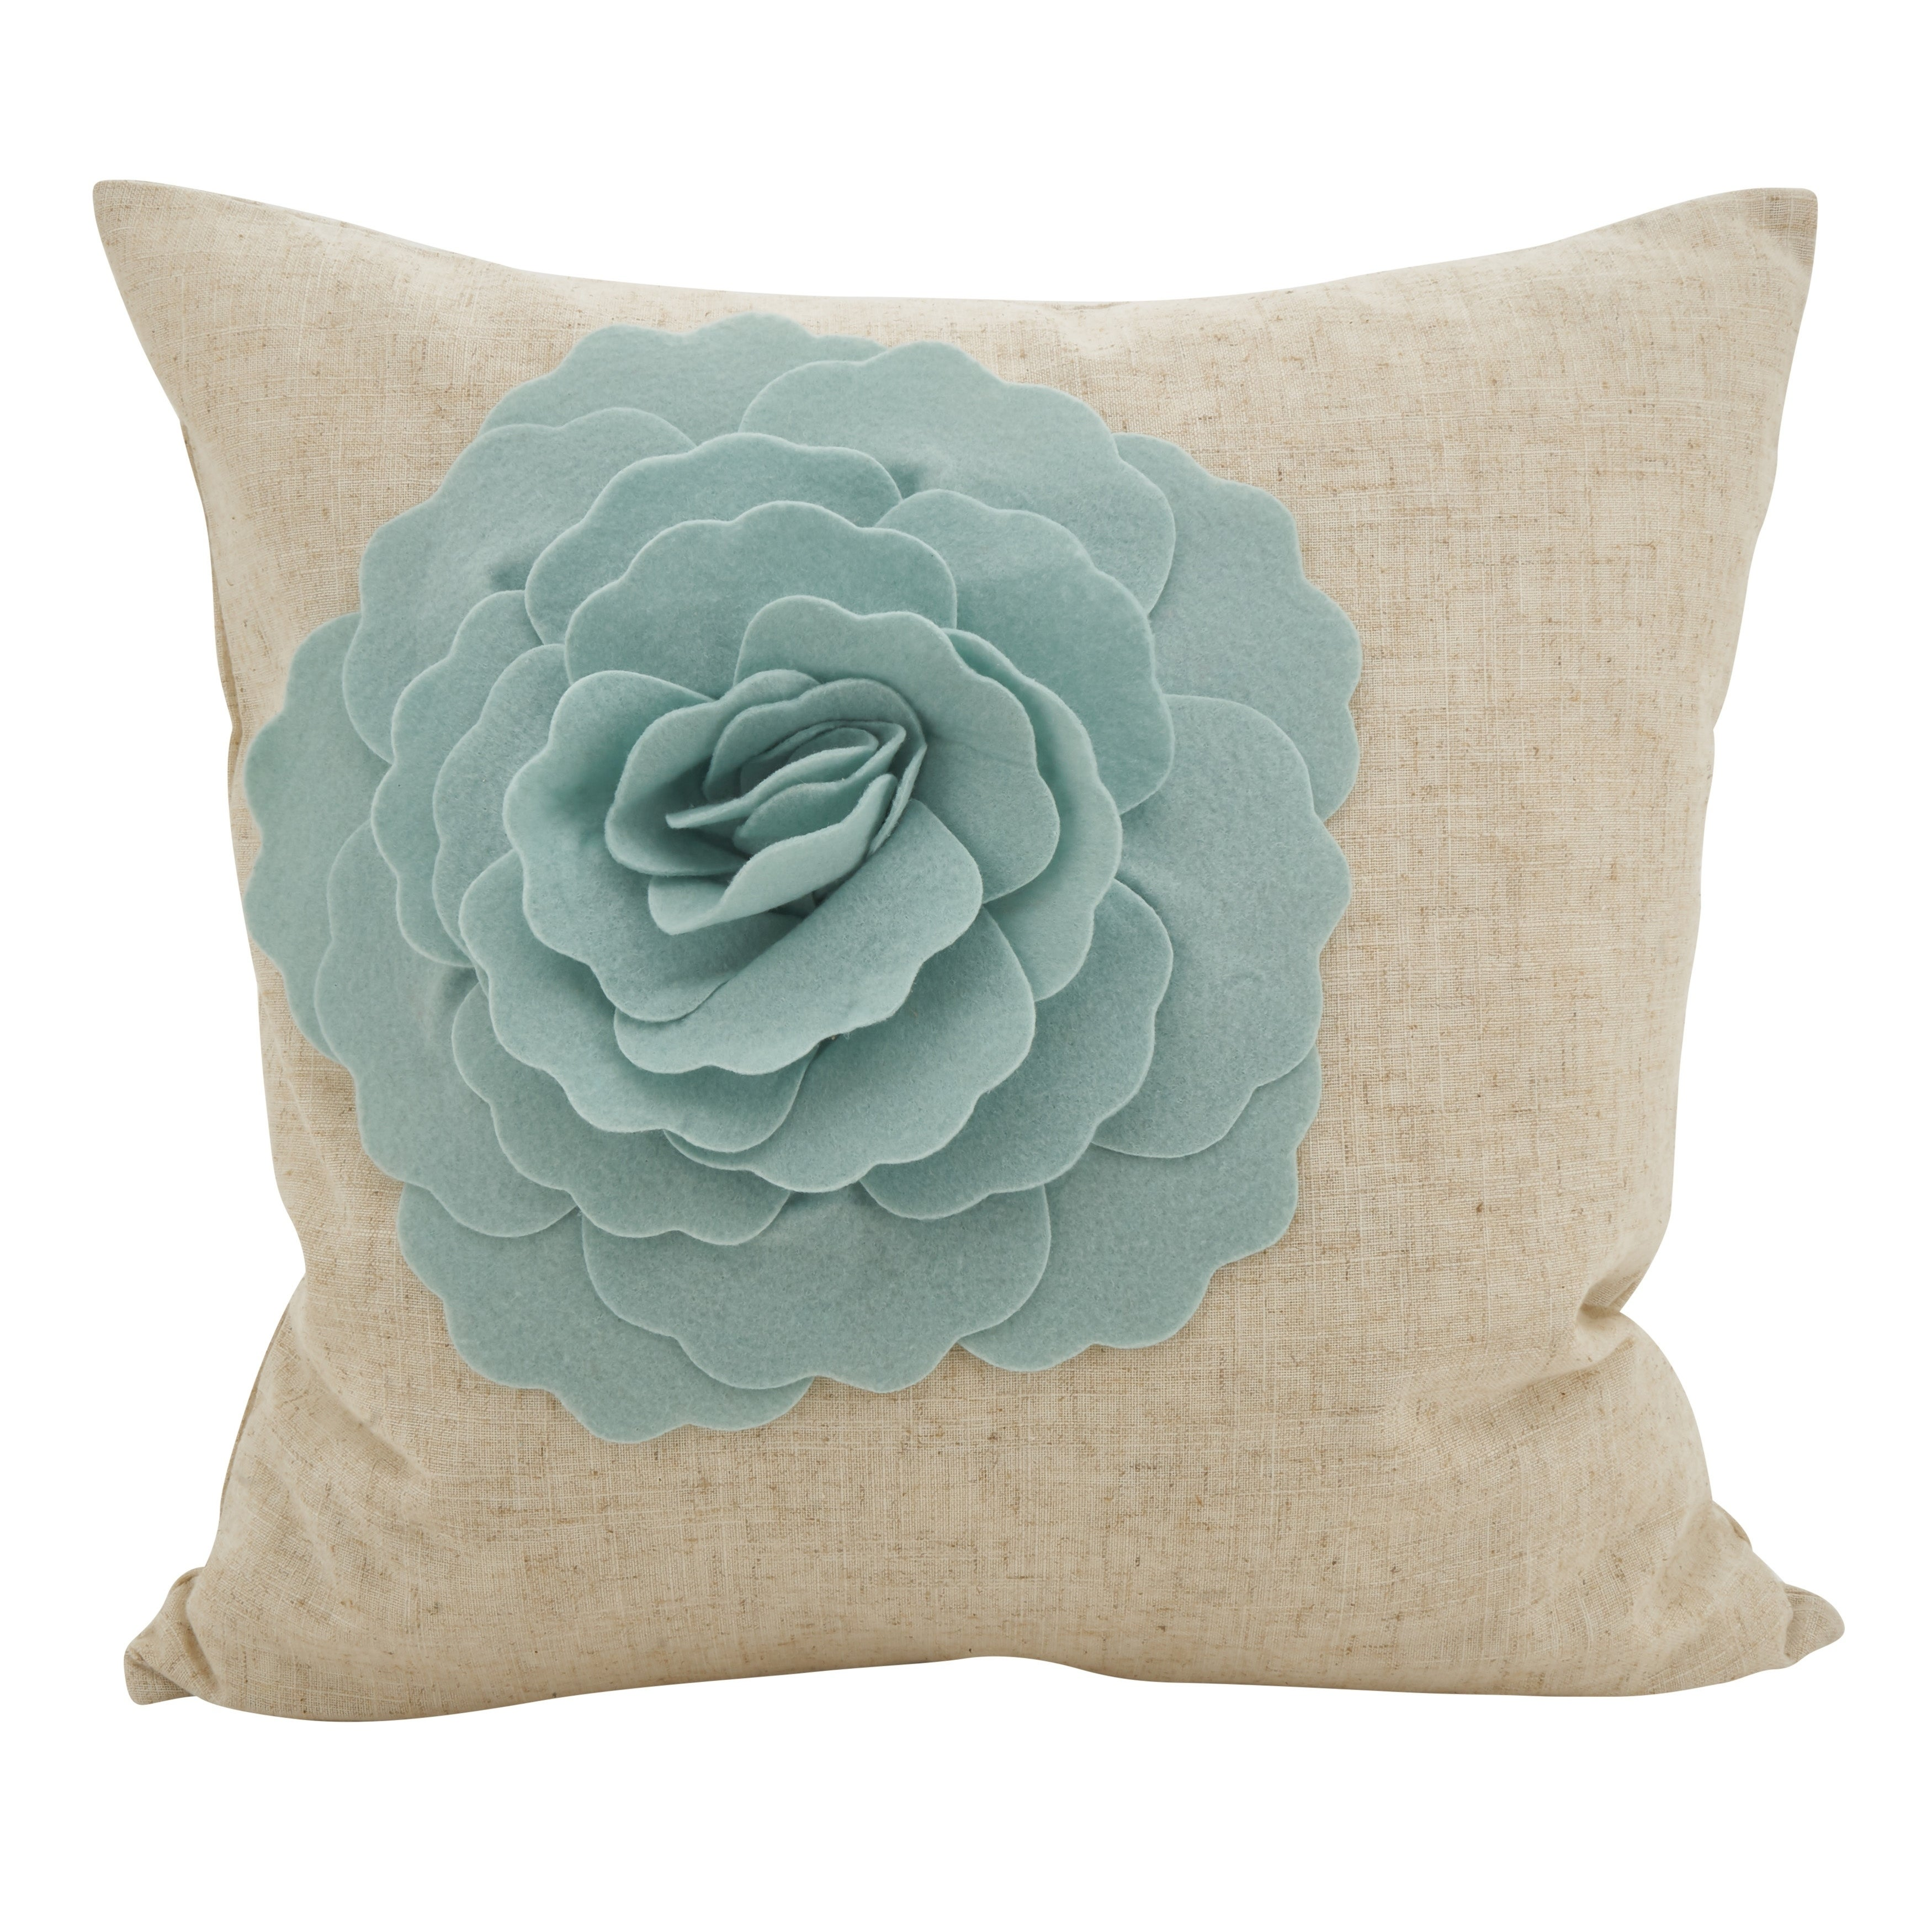 Lotus Flower Statement Poly Filled Throw Pillow Free Shipping On